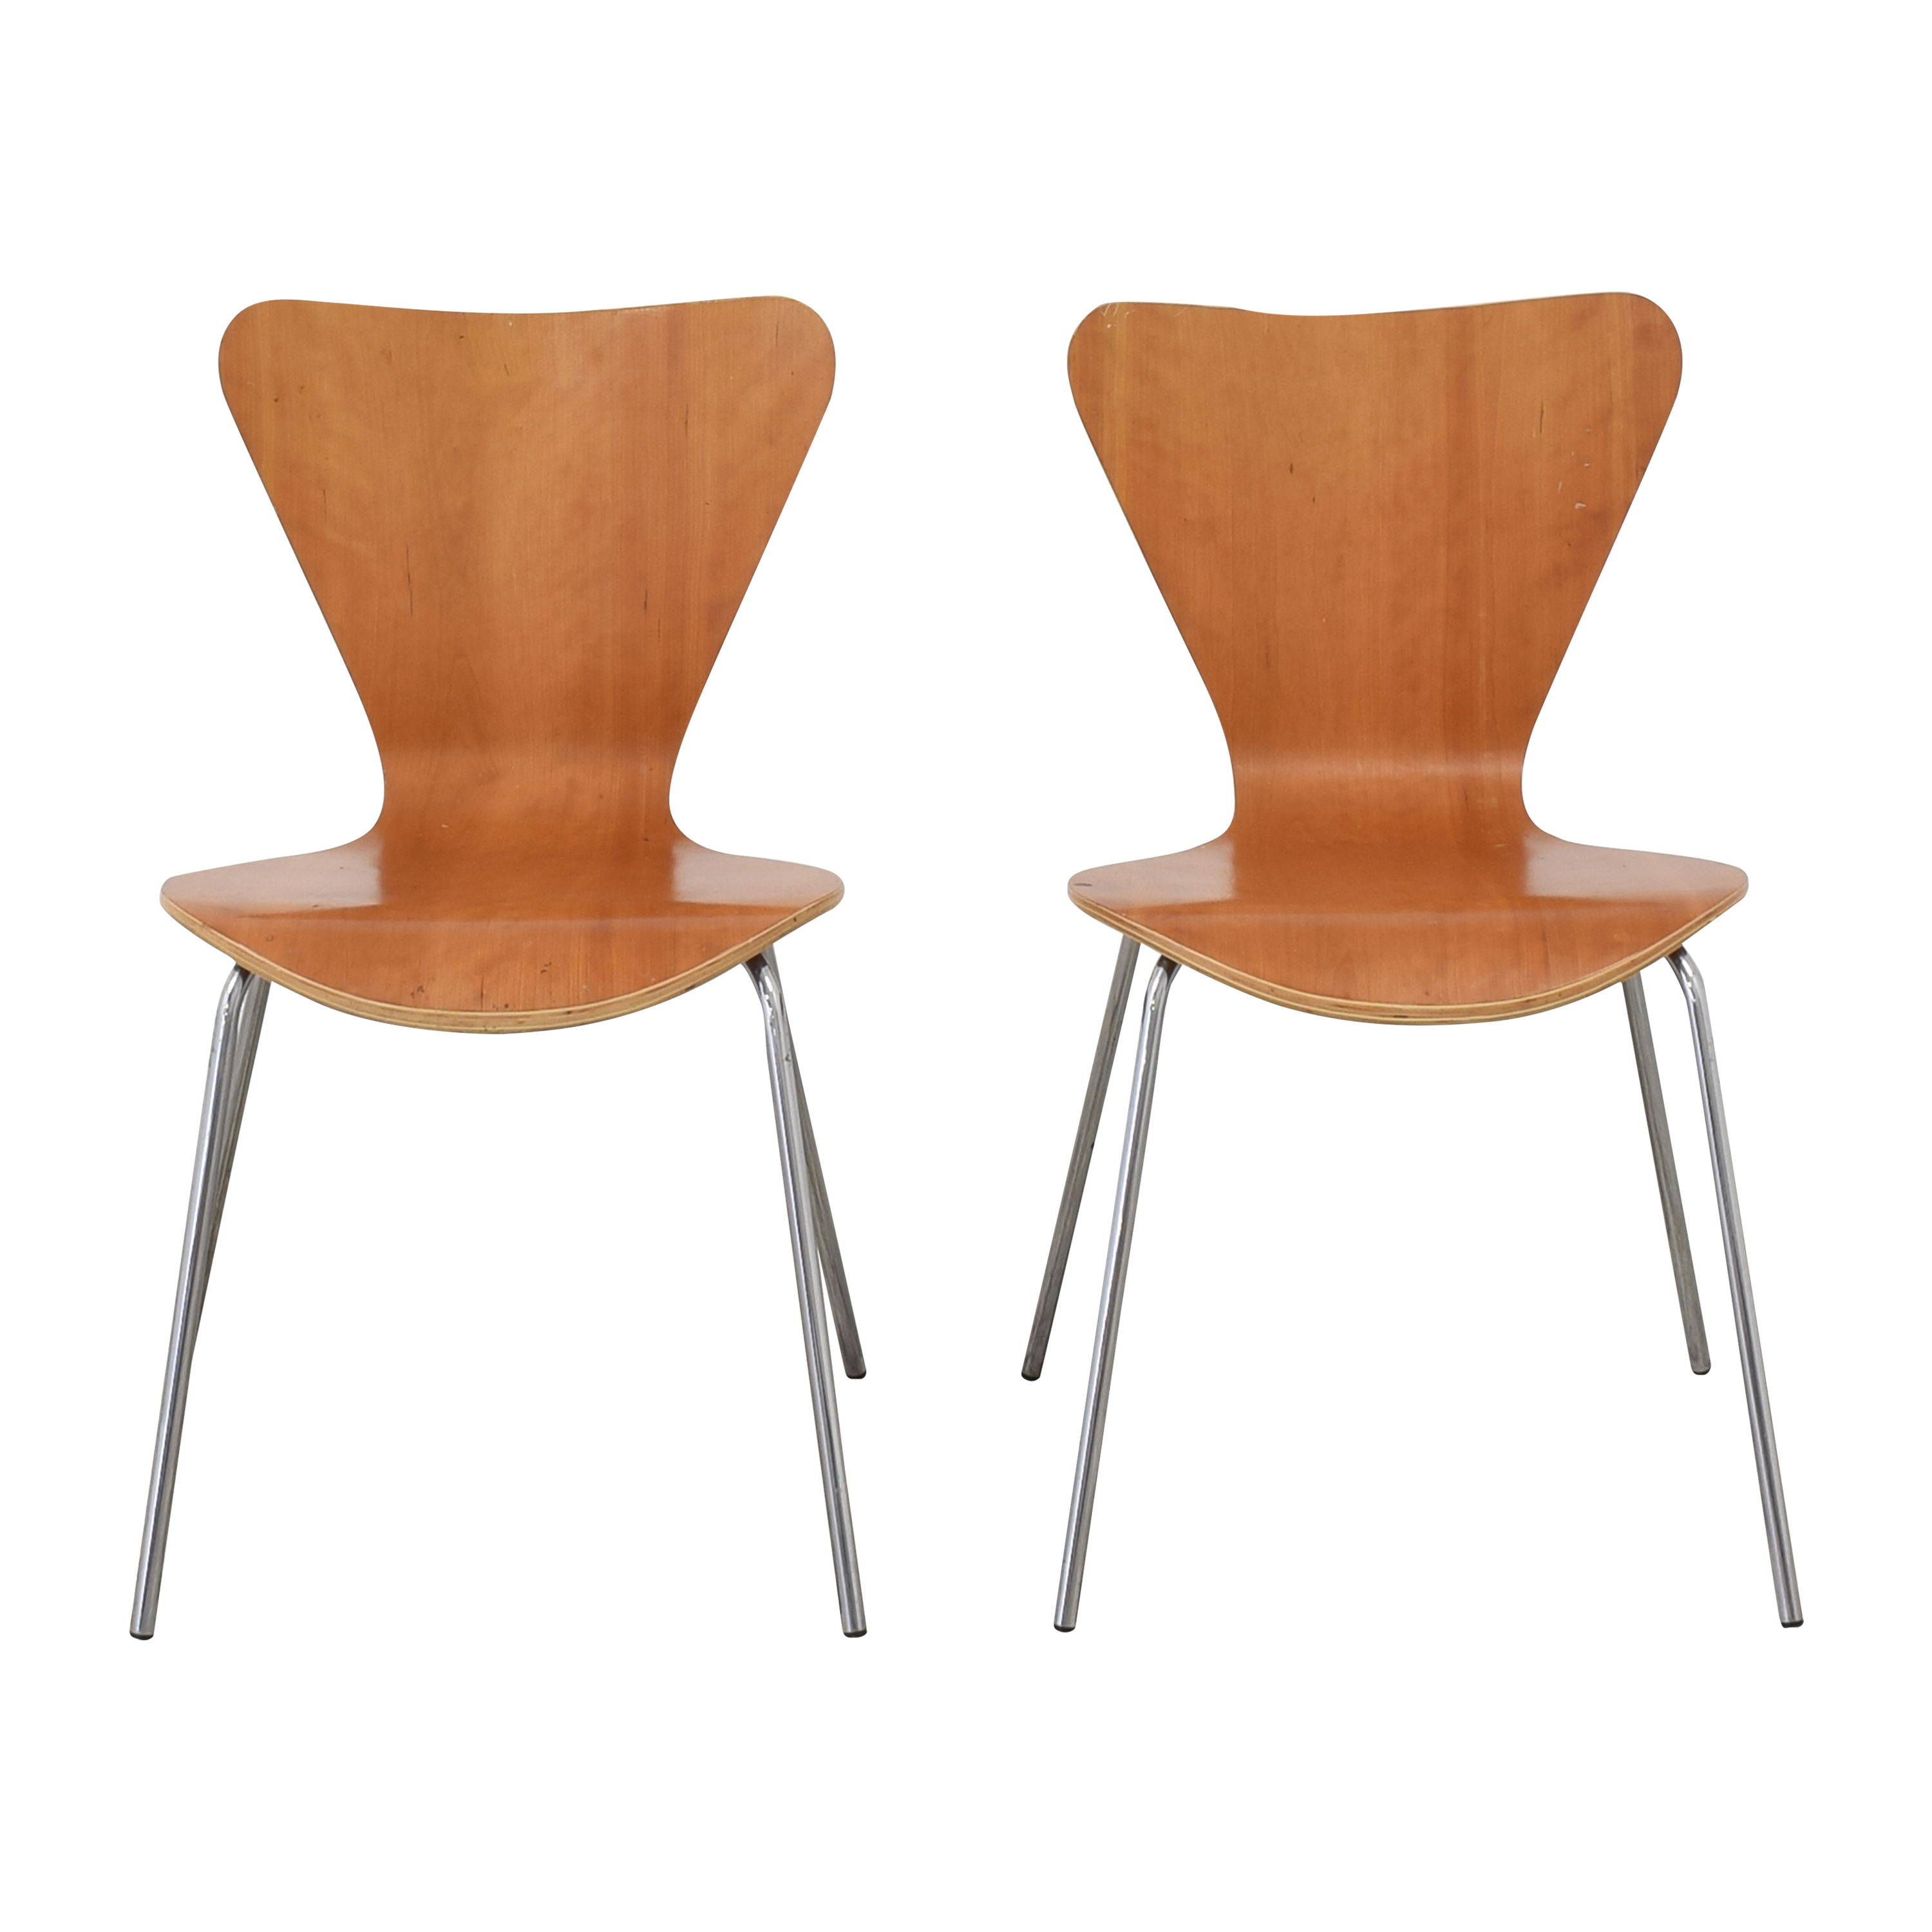 Room & Board Jake Dining Chairs / Chairs